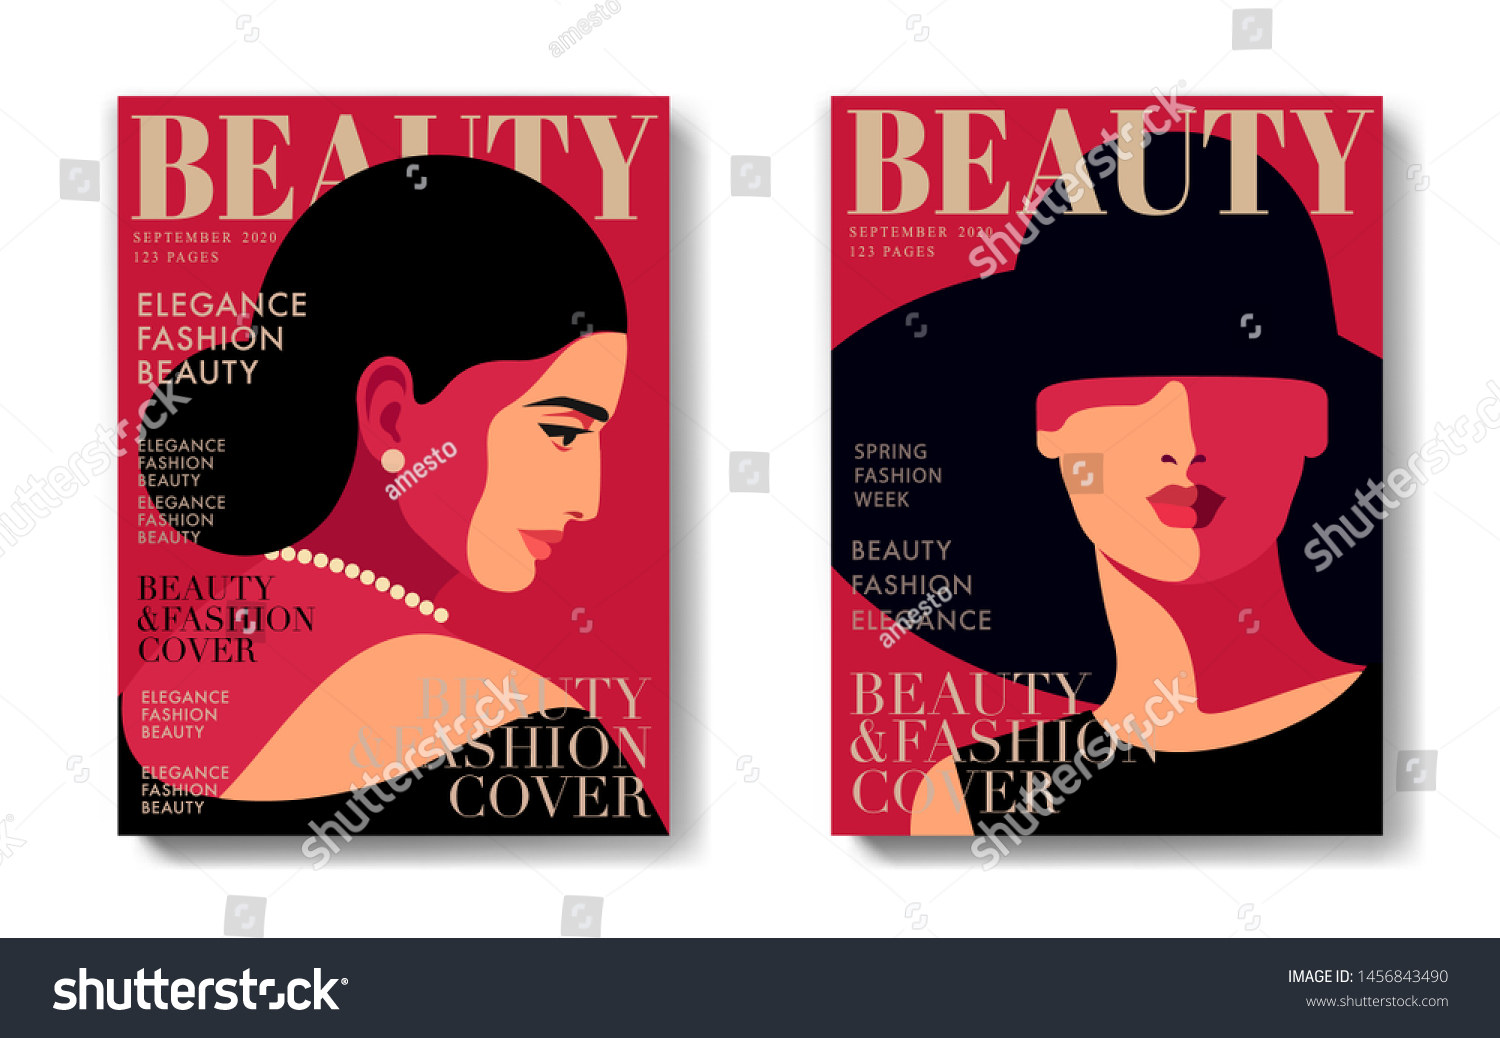 Two Variants Fashion Magazine Cover Designs Stock Vector Royalty Free 1456843490